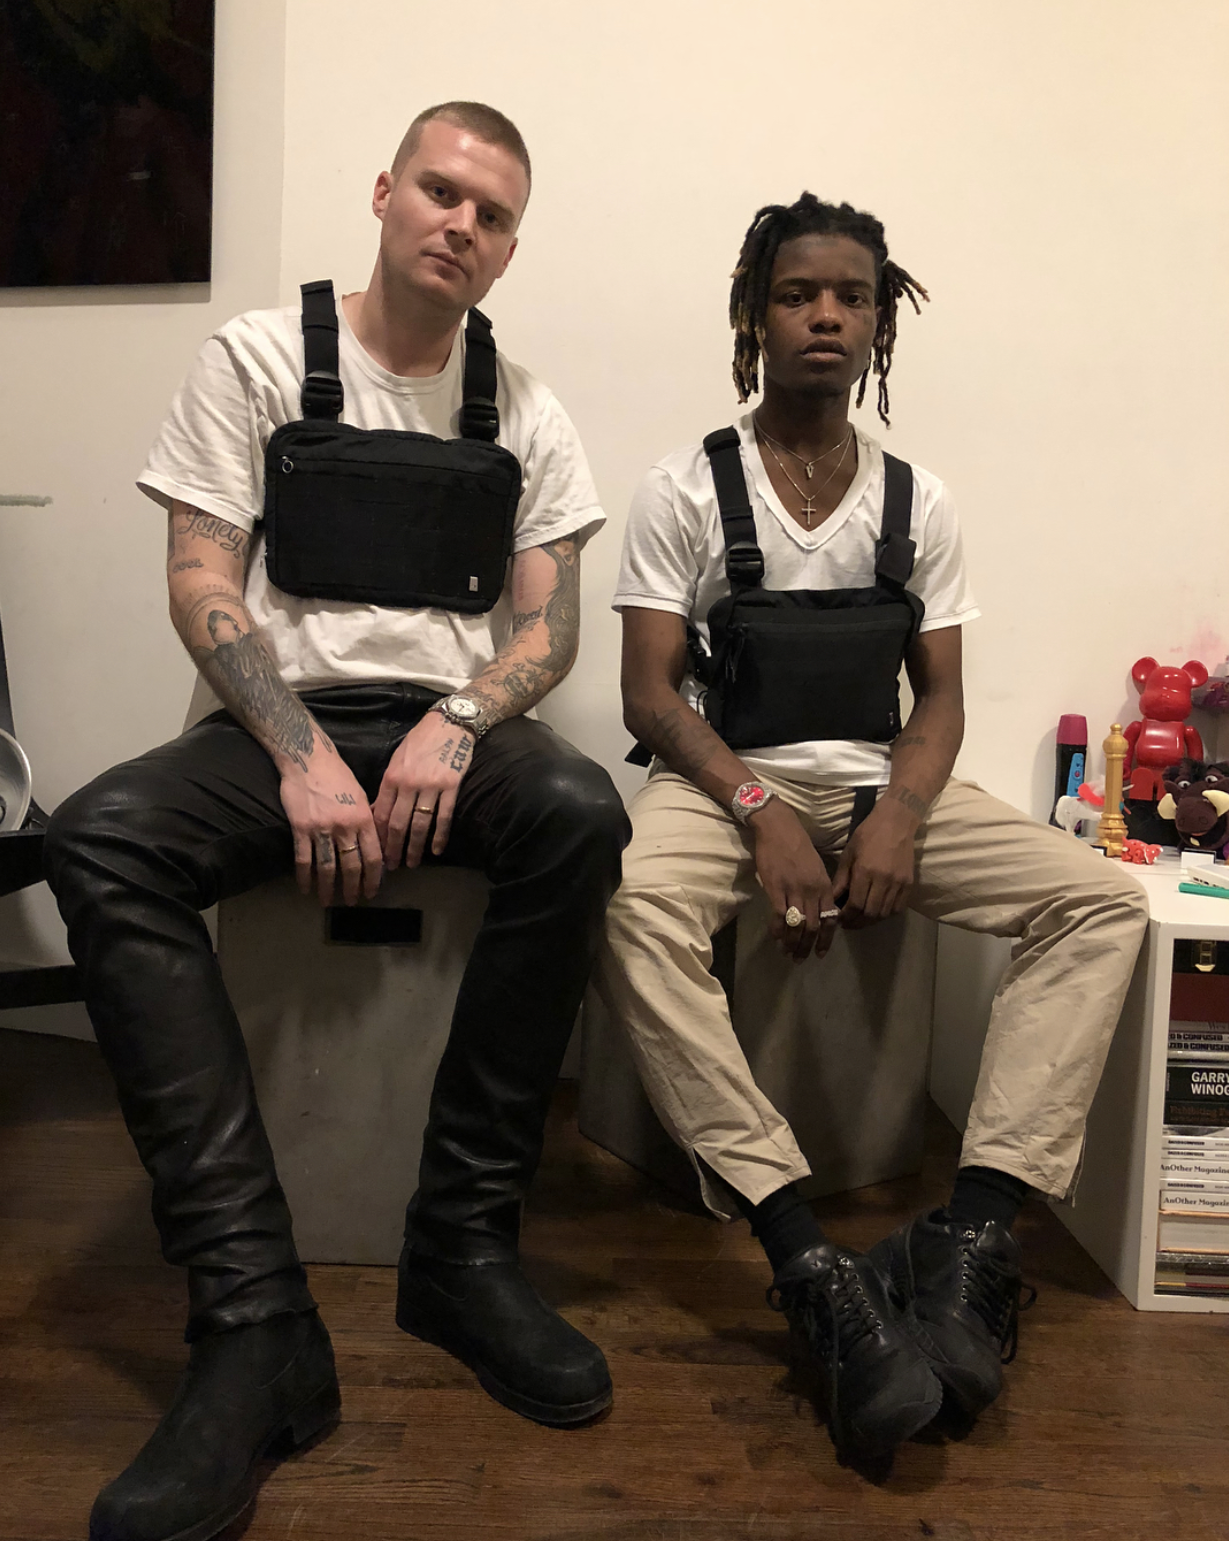 SPOTTED: Ian Connor in ALYX Studios Chest Rig Pouch